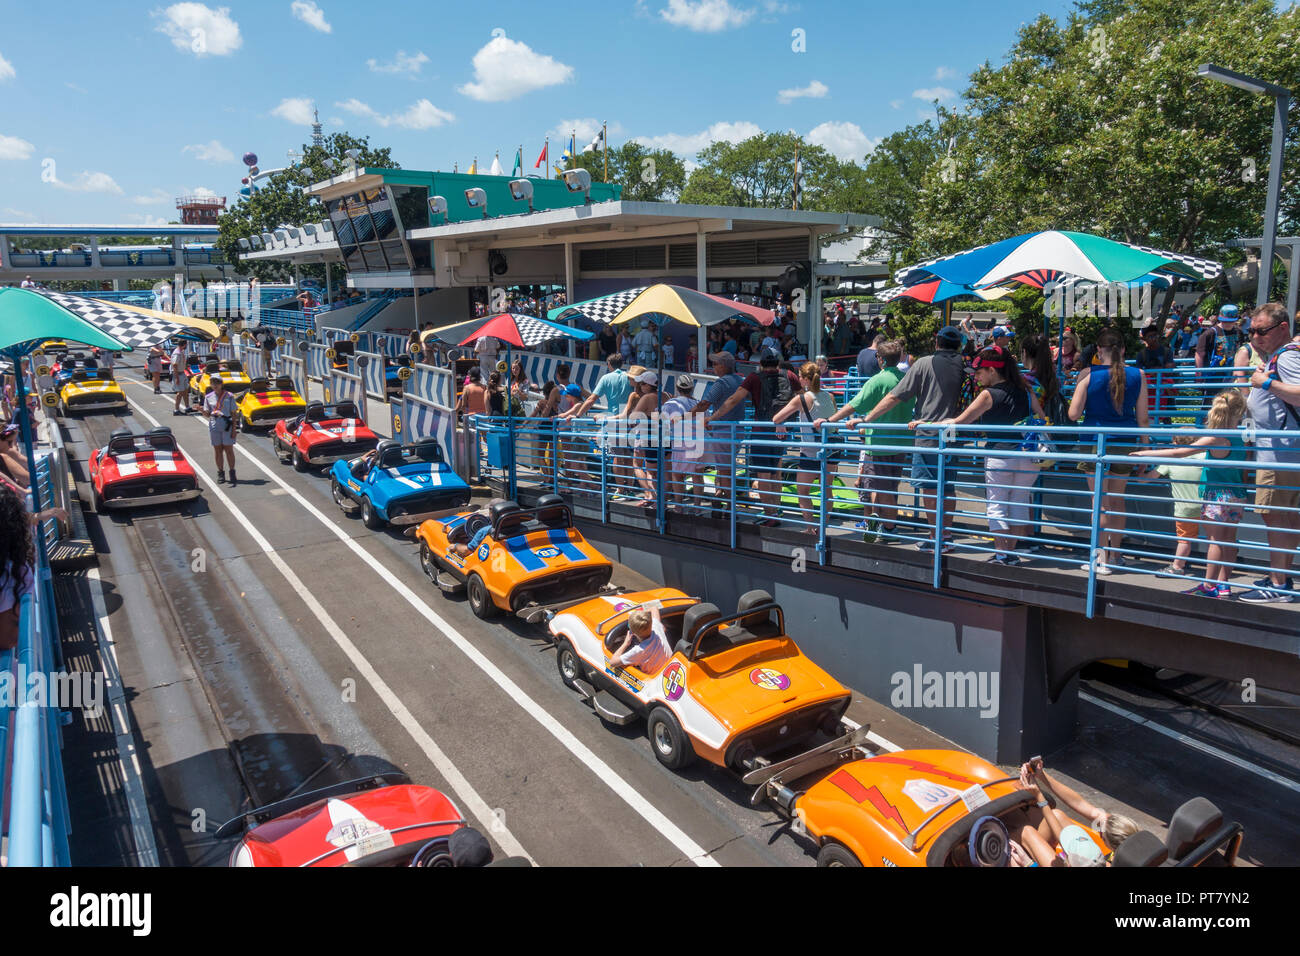 Tomorrowland Speedway Attraction in Magic Kingdom Theme Park, Walt Disney World, Orlando, Florida. - Stock Image